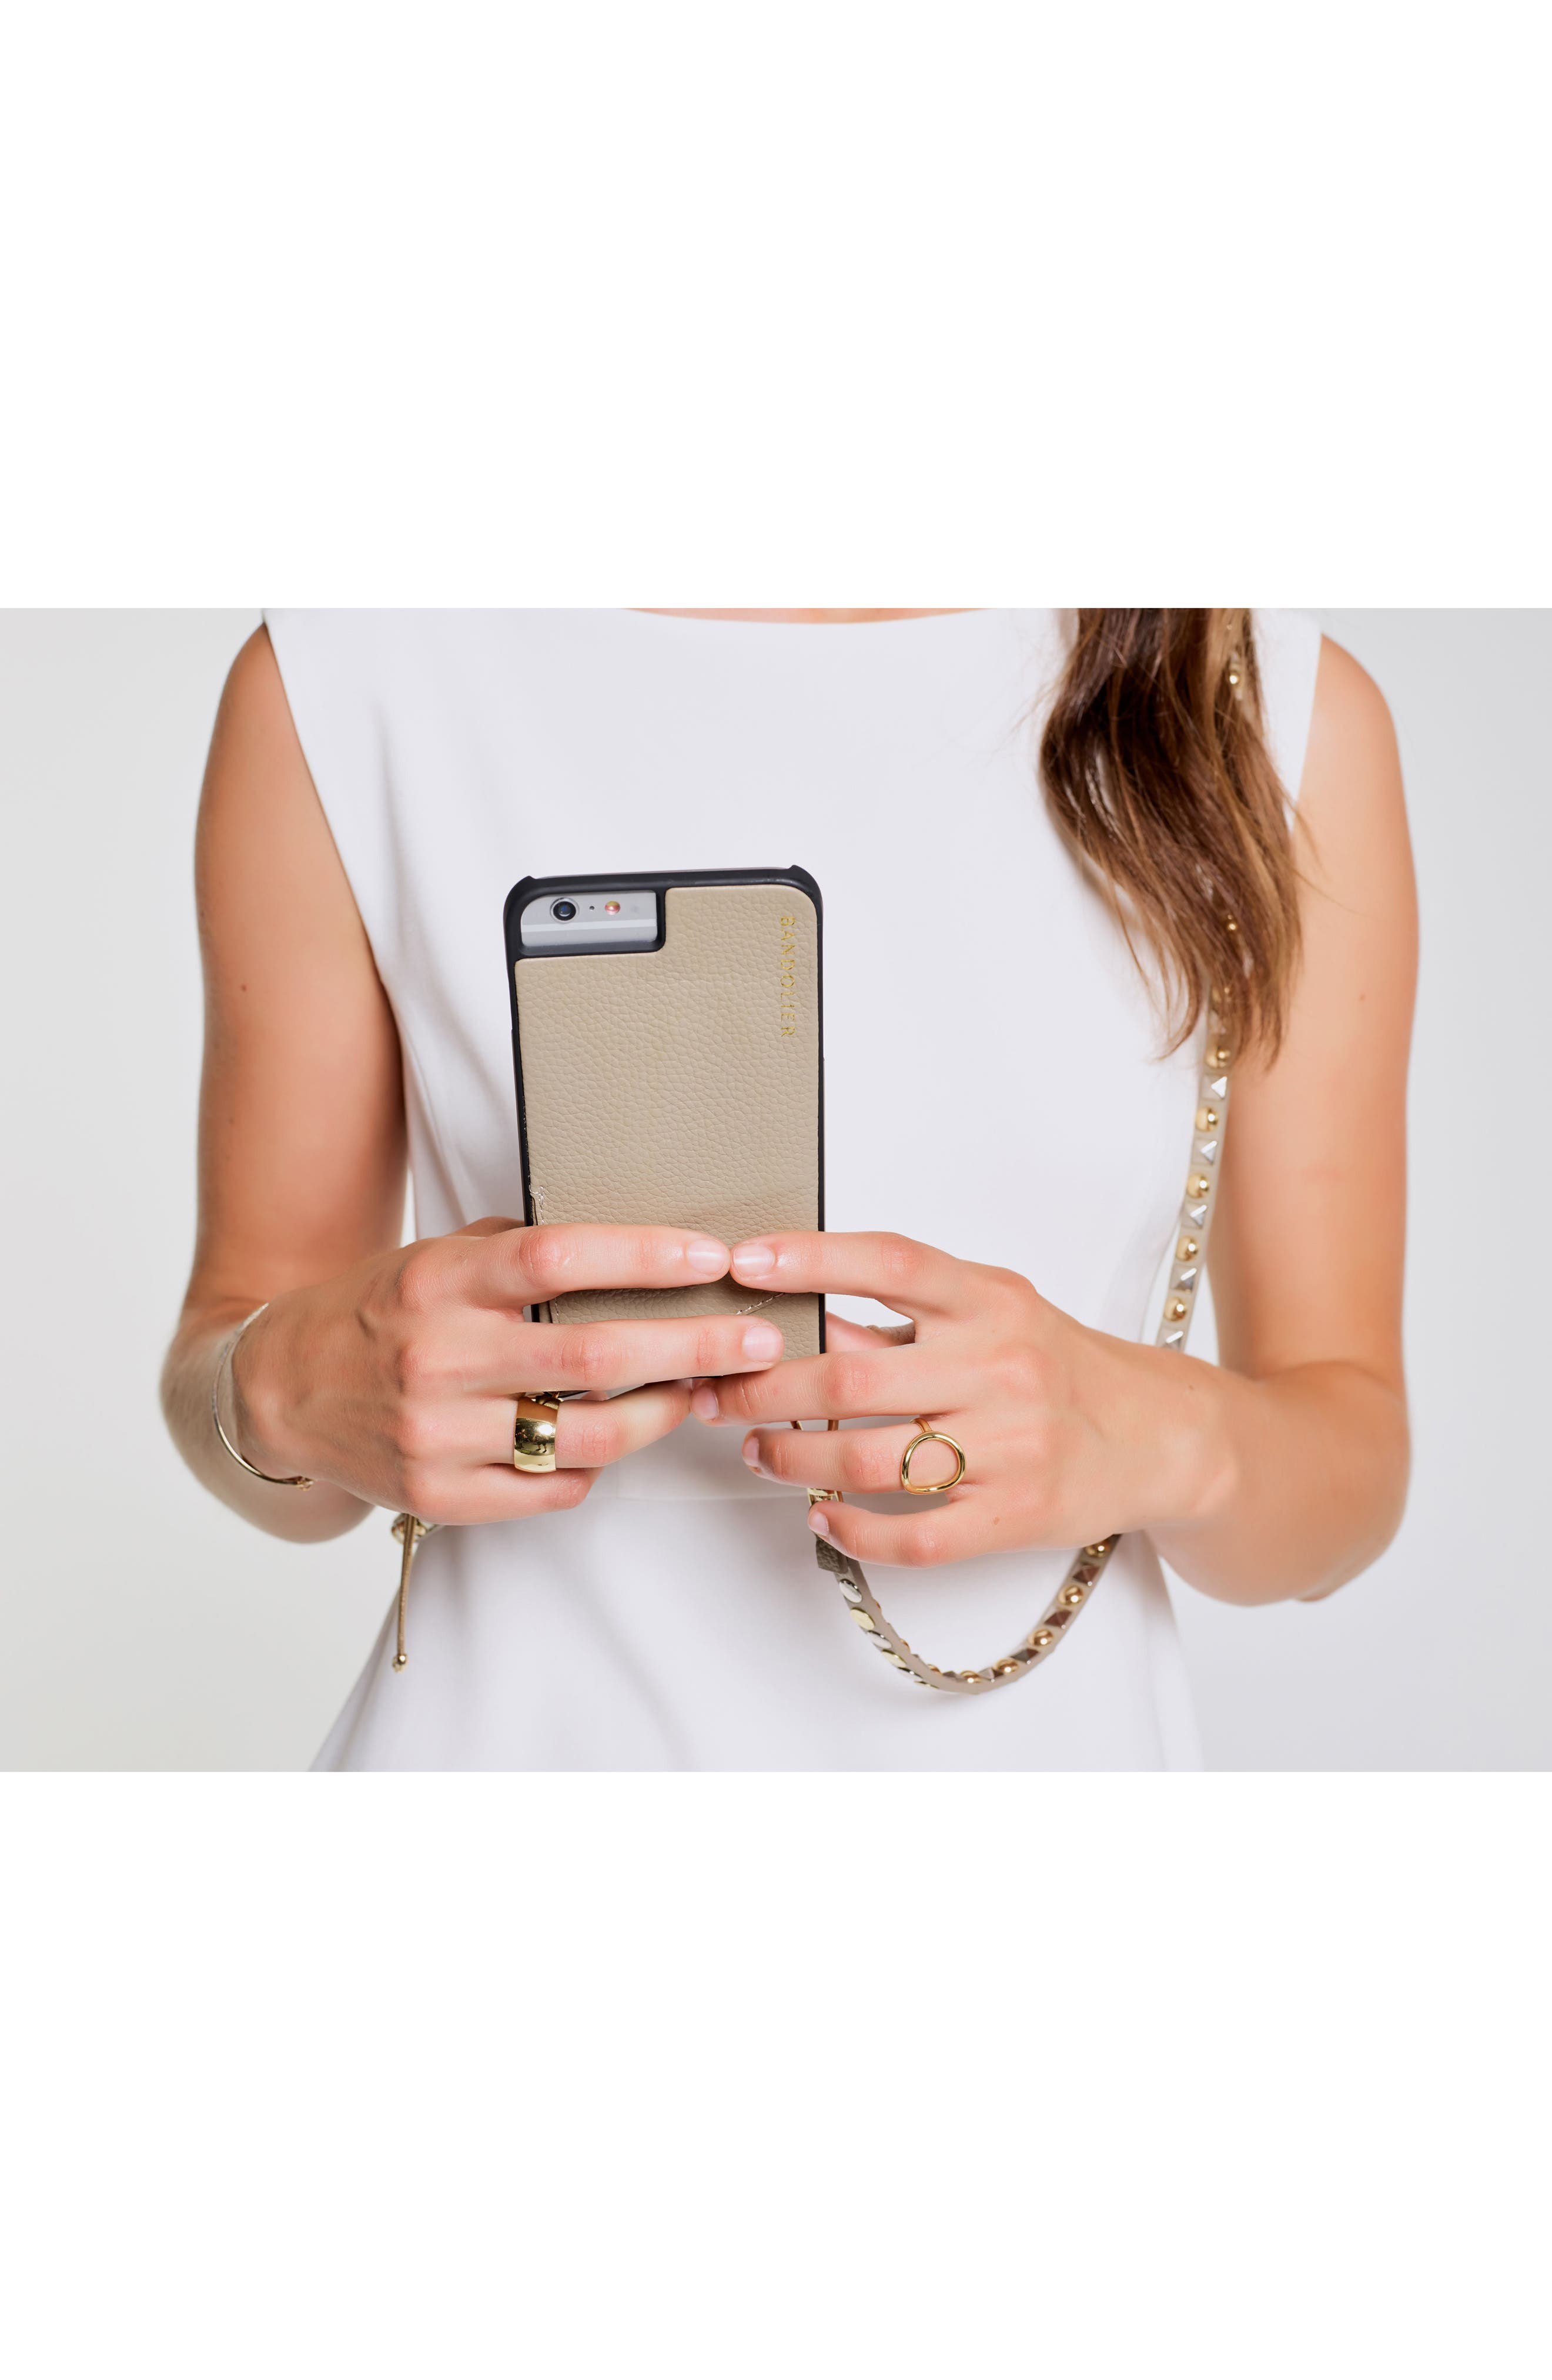 Stella iPhone 6/7/8 & 6/7/8 Plus Leather Crossbody Case,                             Alternate thumbnail 5, color,                             Pebble/ Gold/ Silver